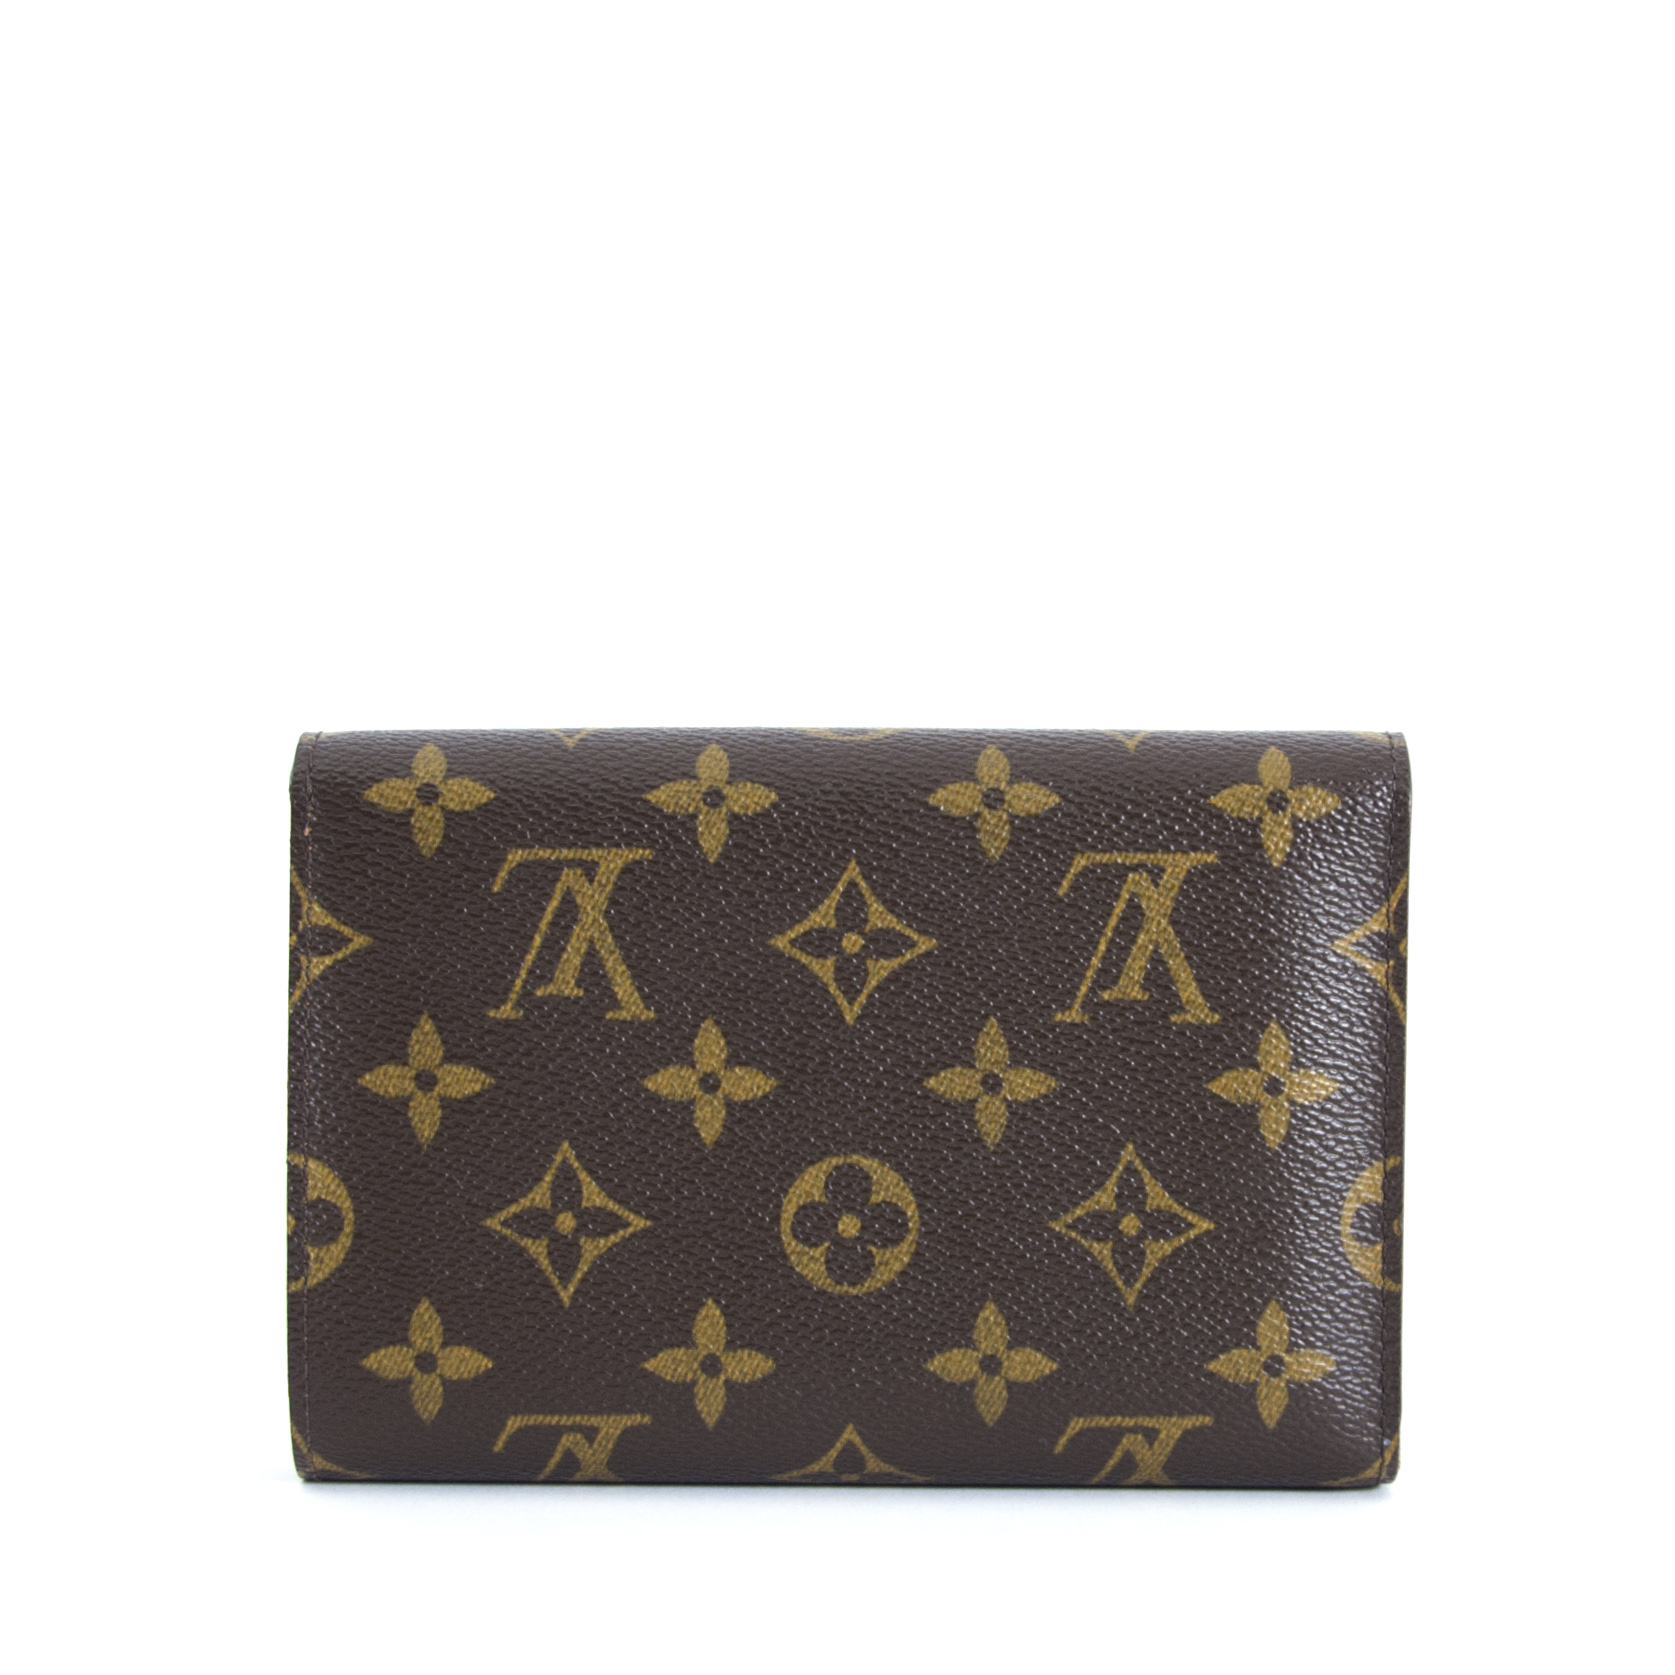 Louis Vuitton Monogram Alexandra Wallet online at the best price